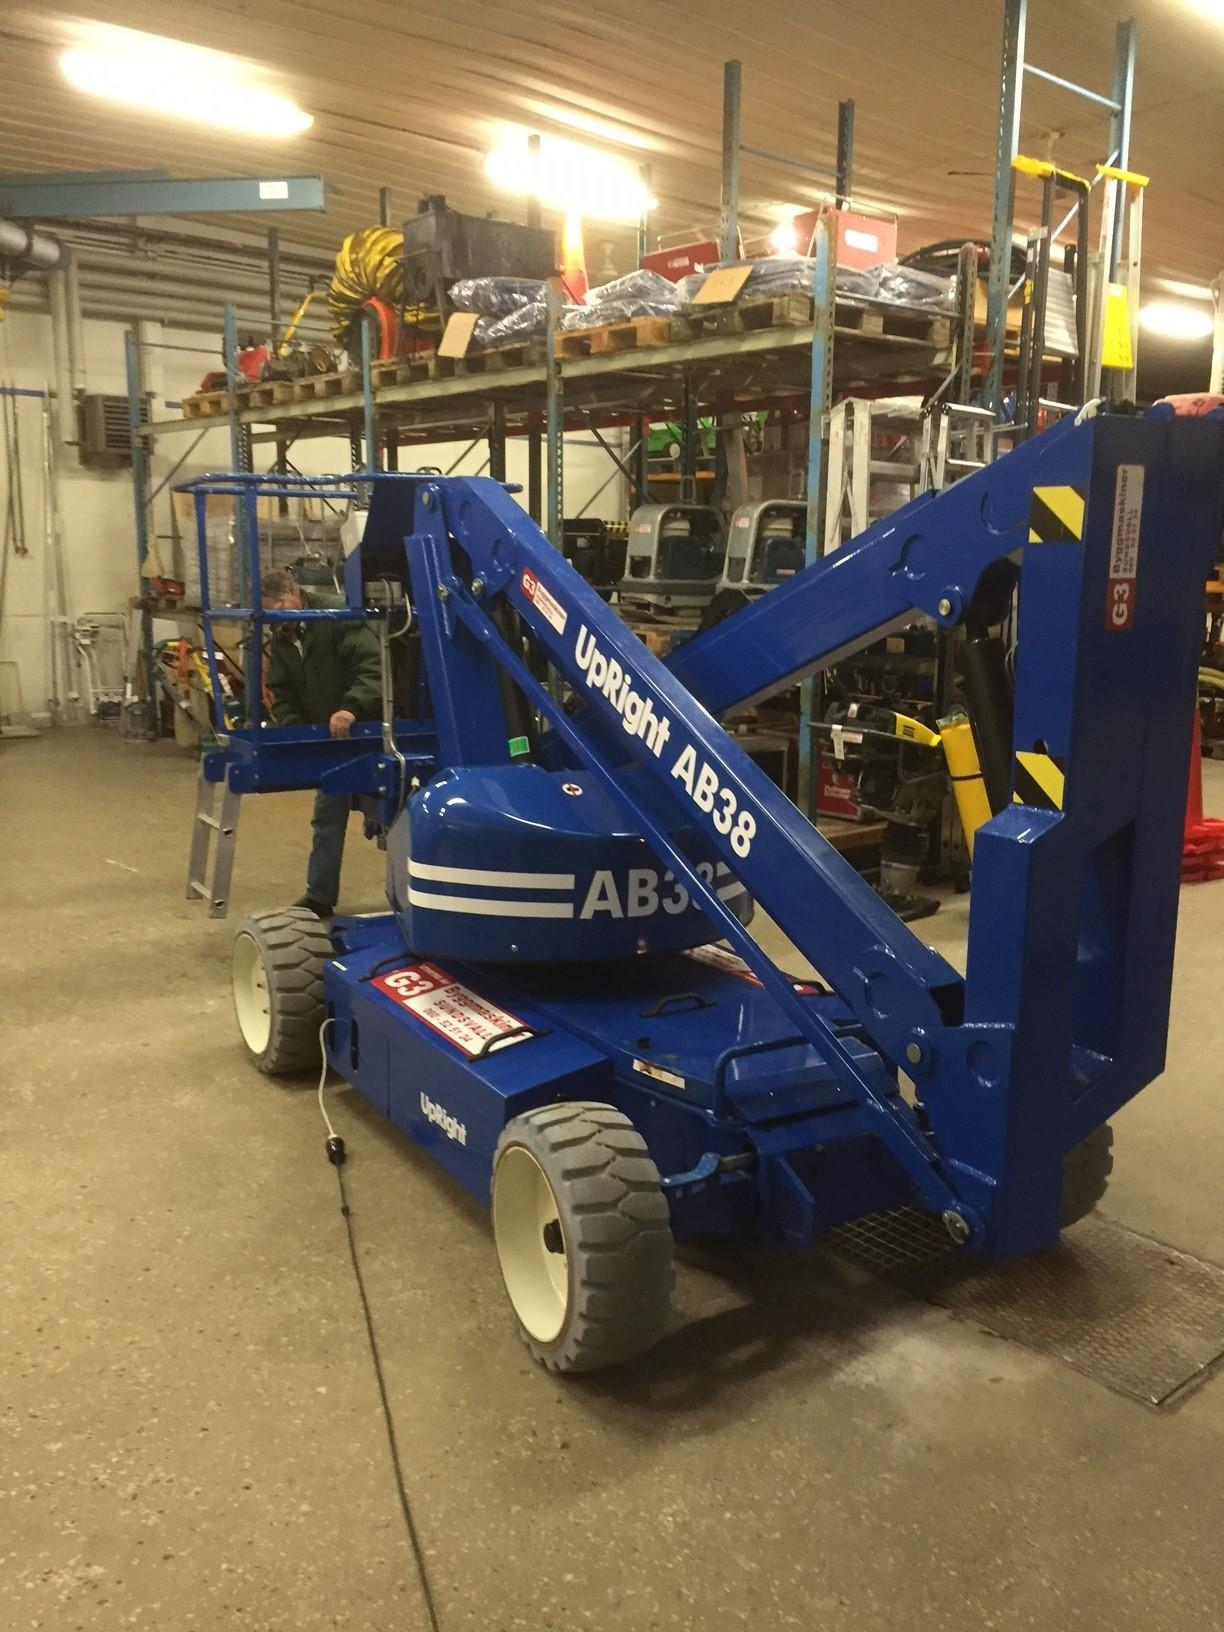 Eldriven bomlift Upright AB38